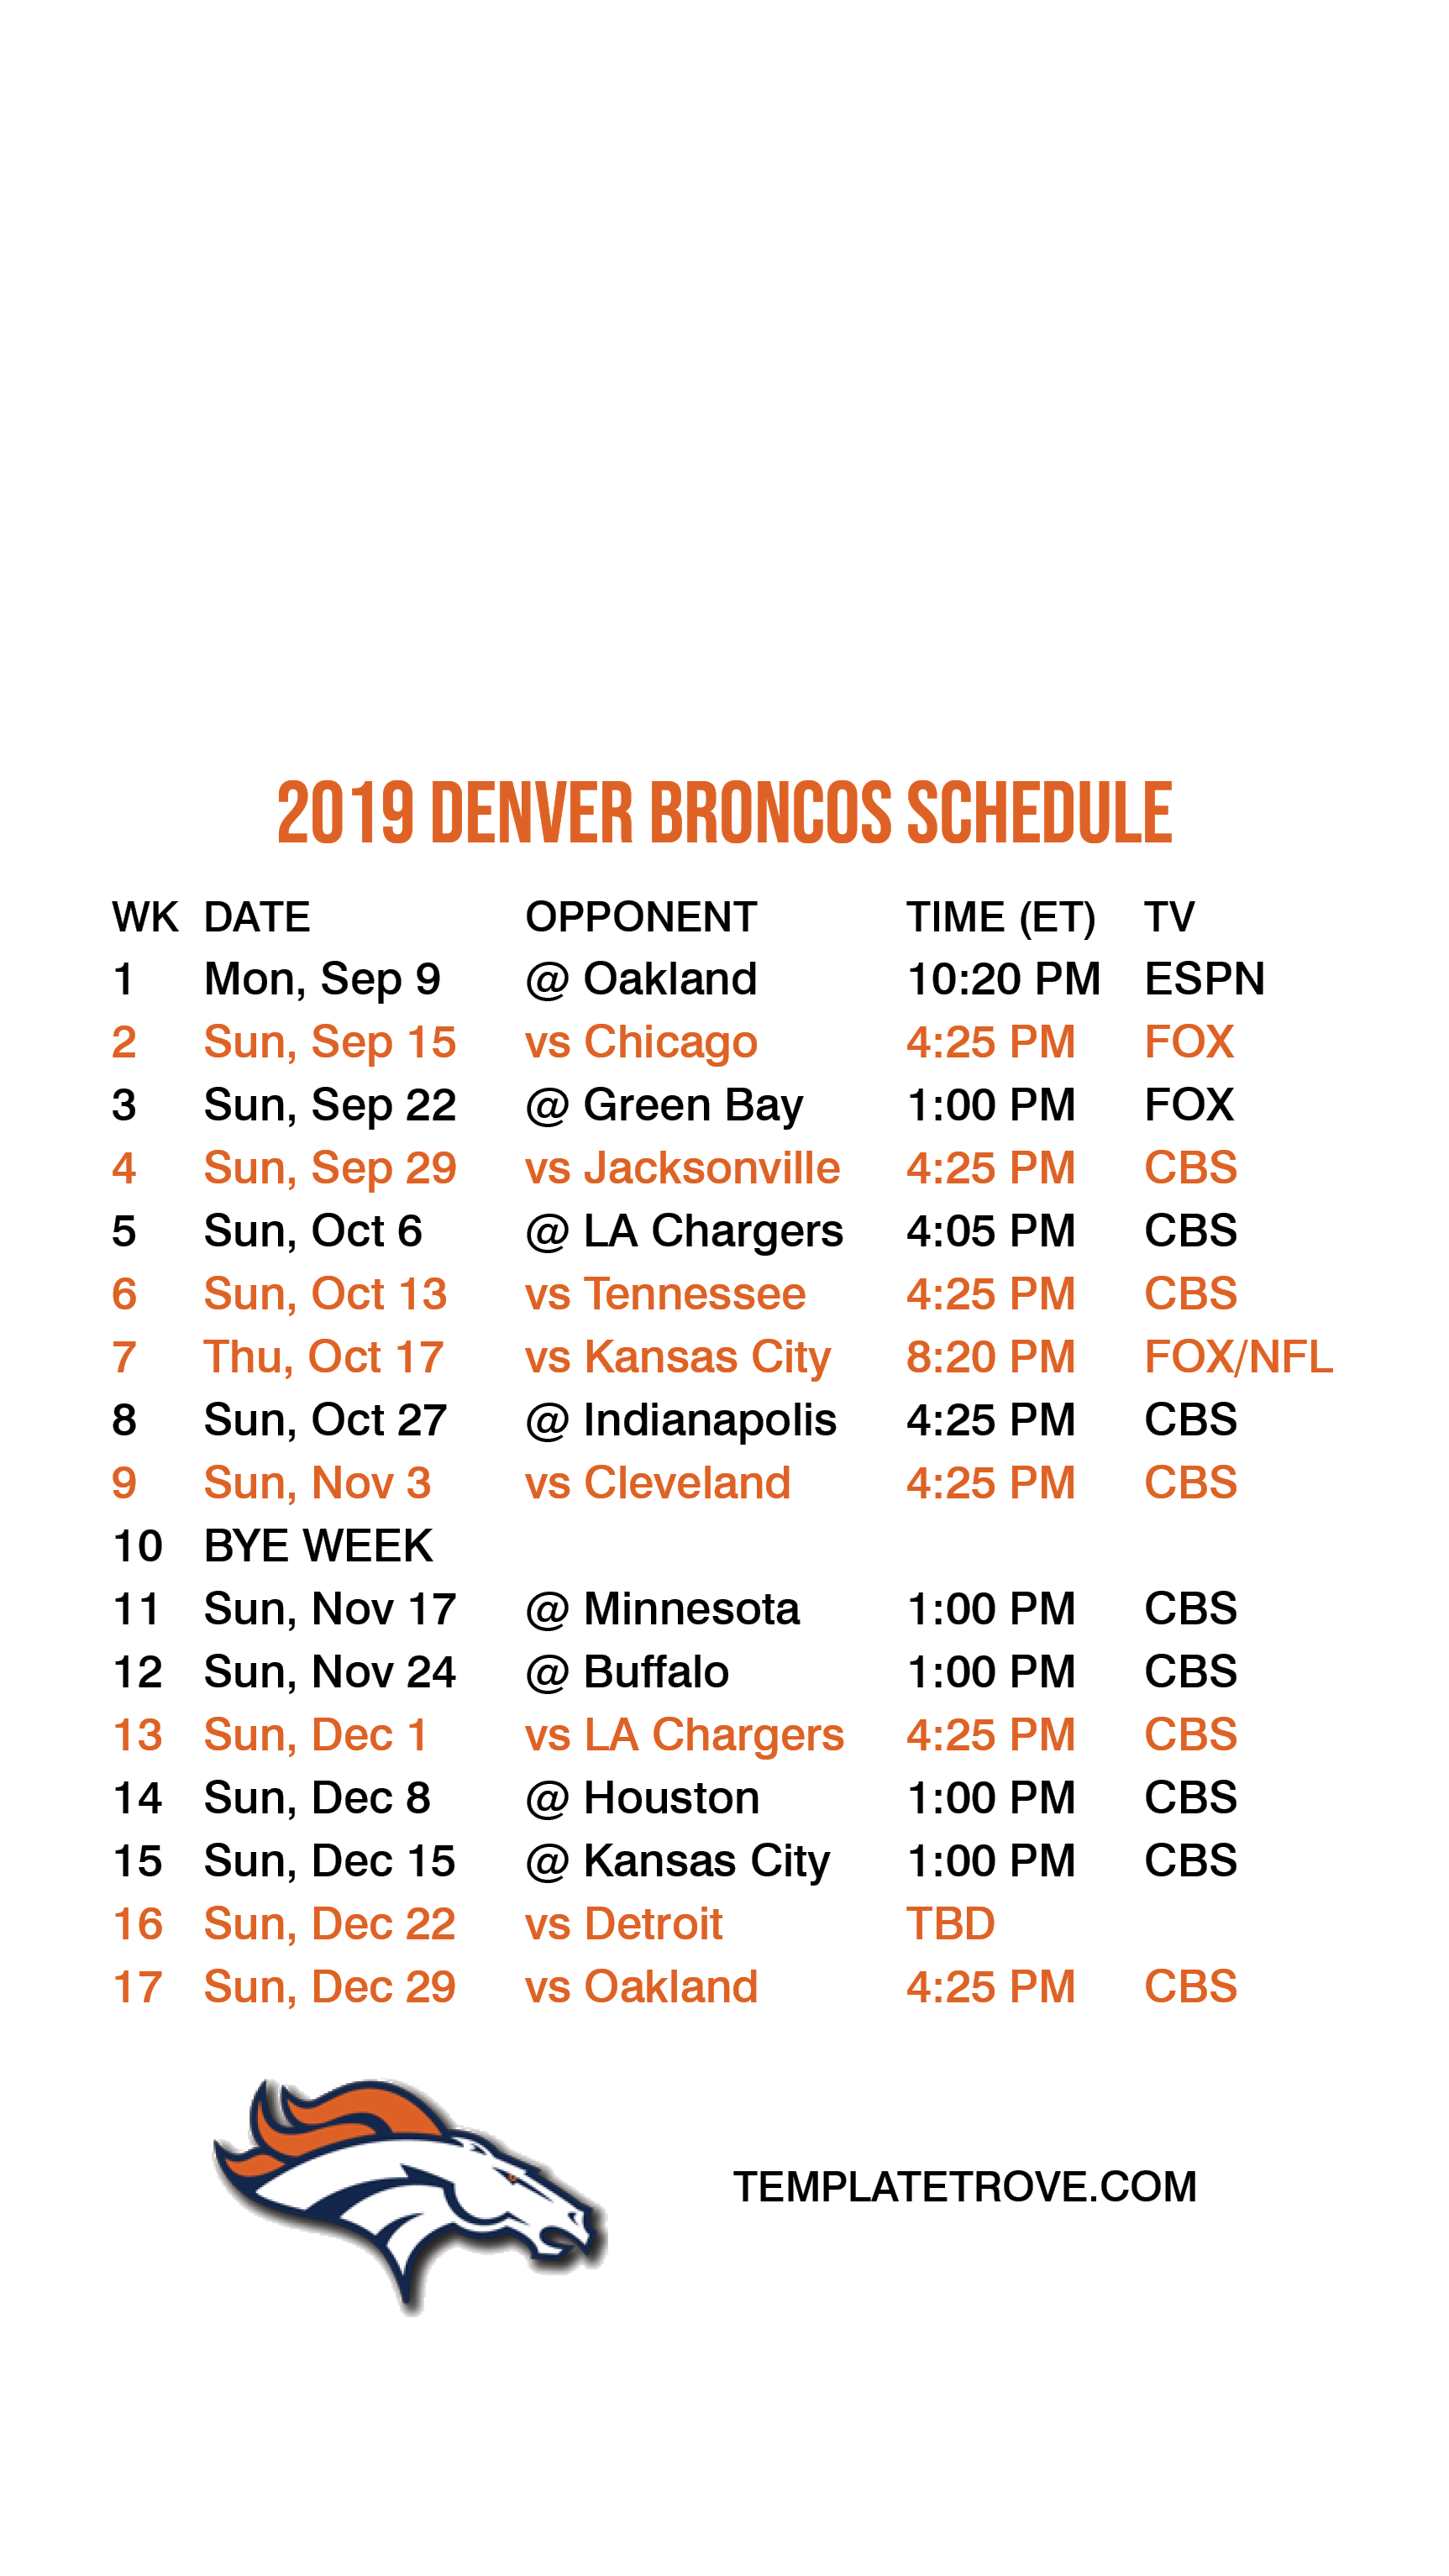 photograph regarding Denver Broncos Printable Schedule referred to as 2019-2020 Denver Broncos Lock Display screen Routine for apple iphone 6-7